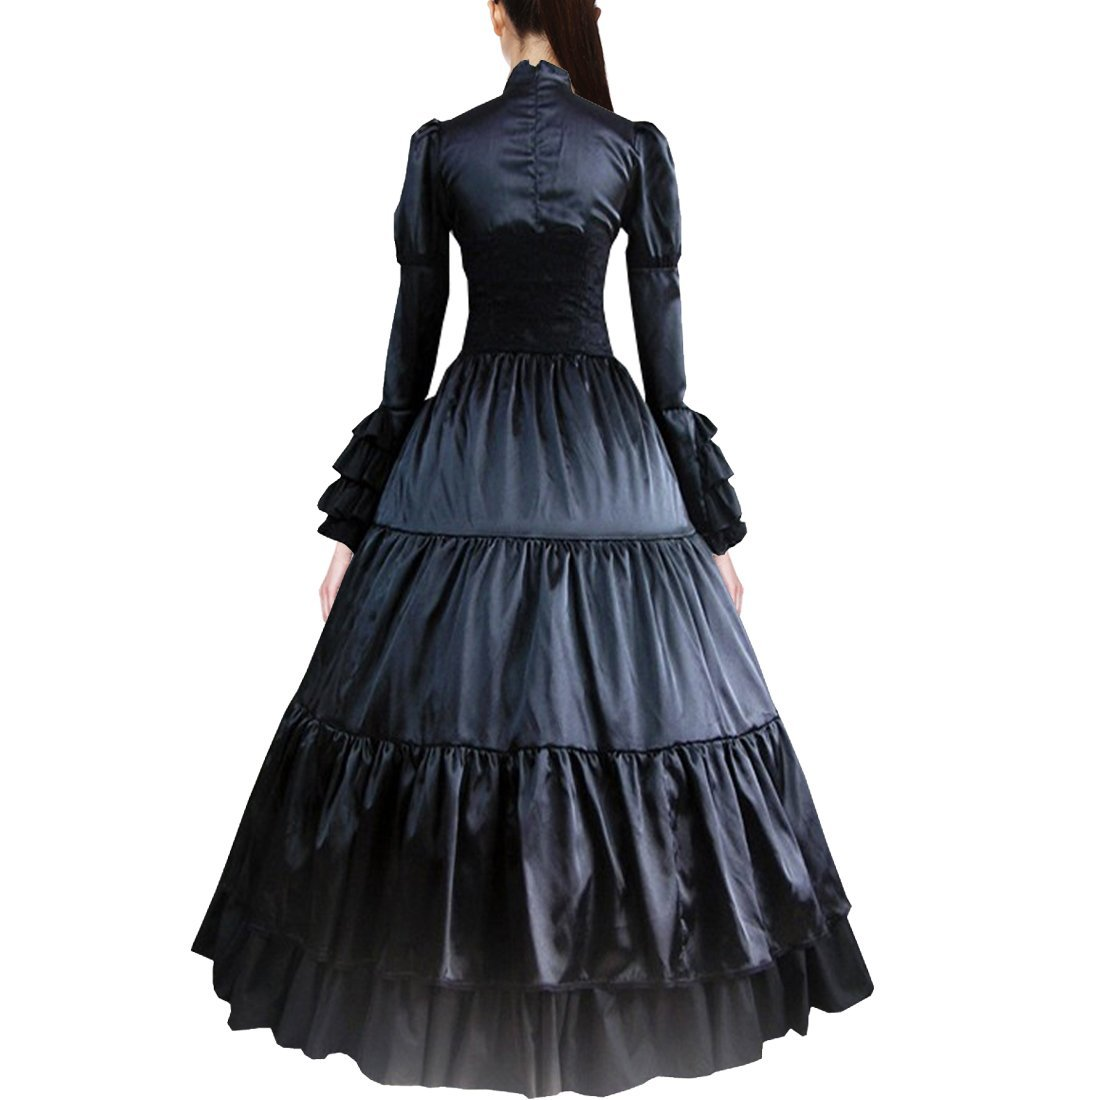 Fancy Dress Store Partiss Women Bowknot Stand Collar Gothic Victorian Dress Costumes M,Black by Fancy Dress Store (Image #3)